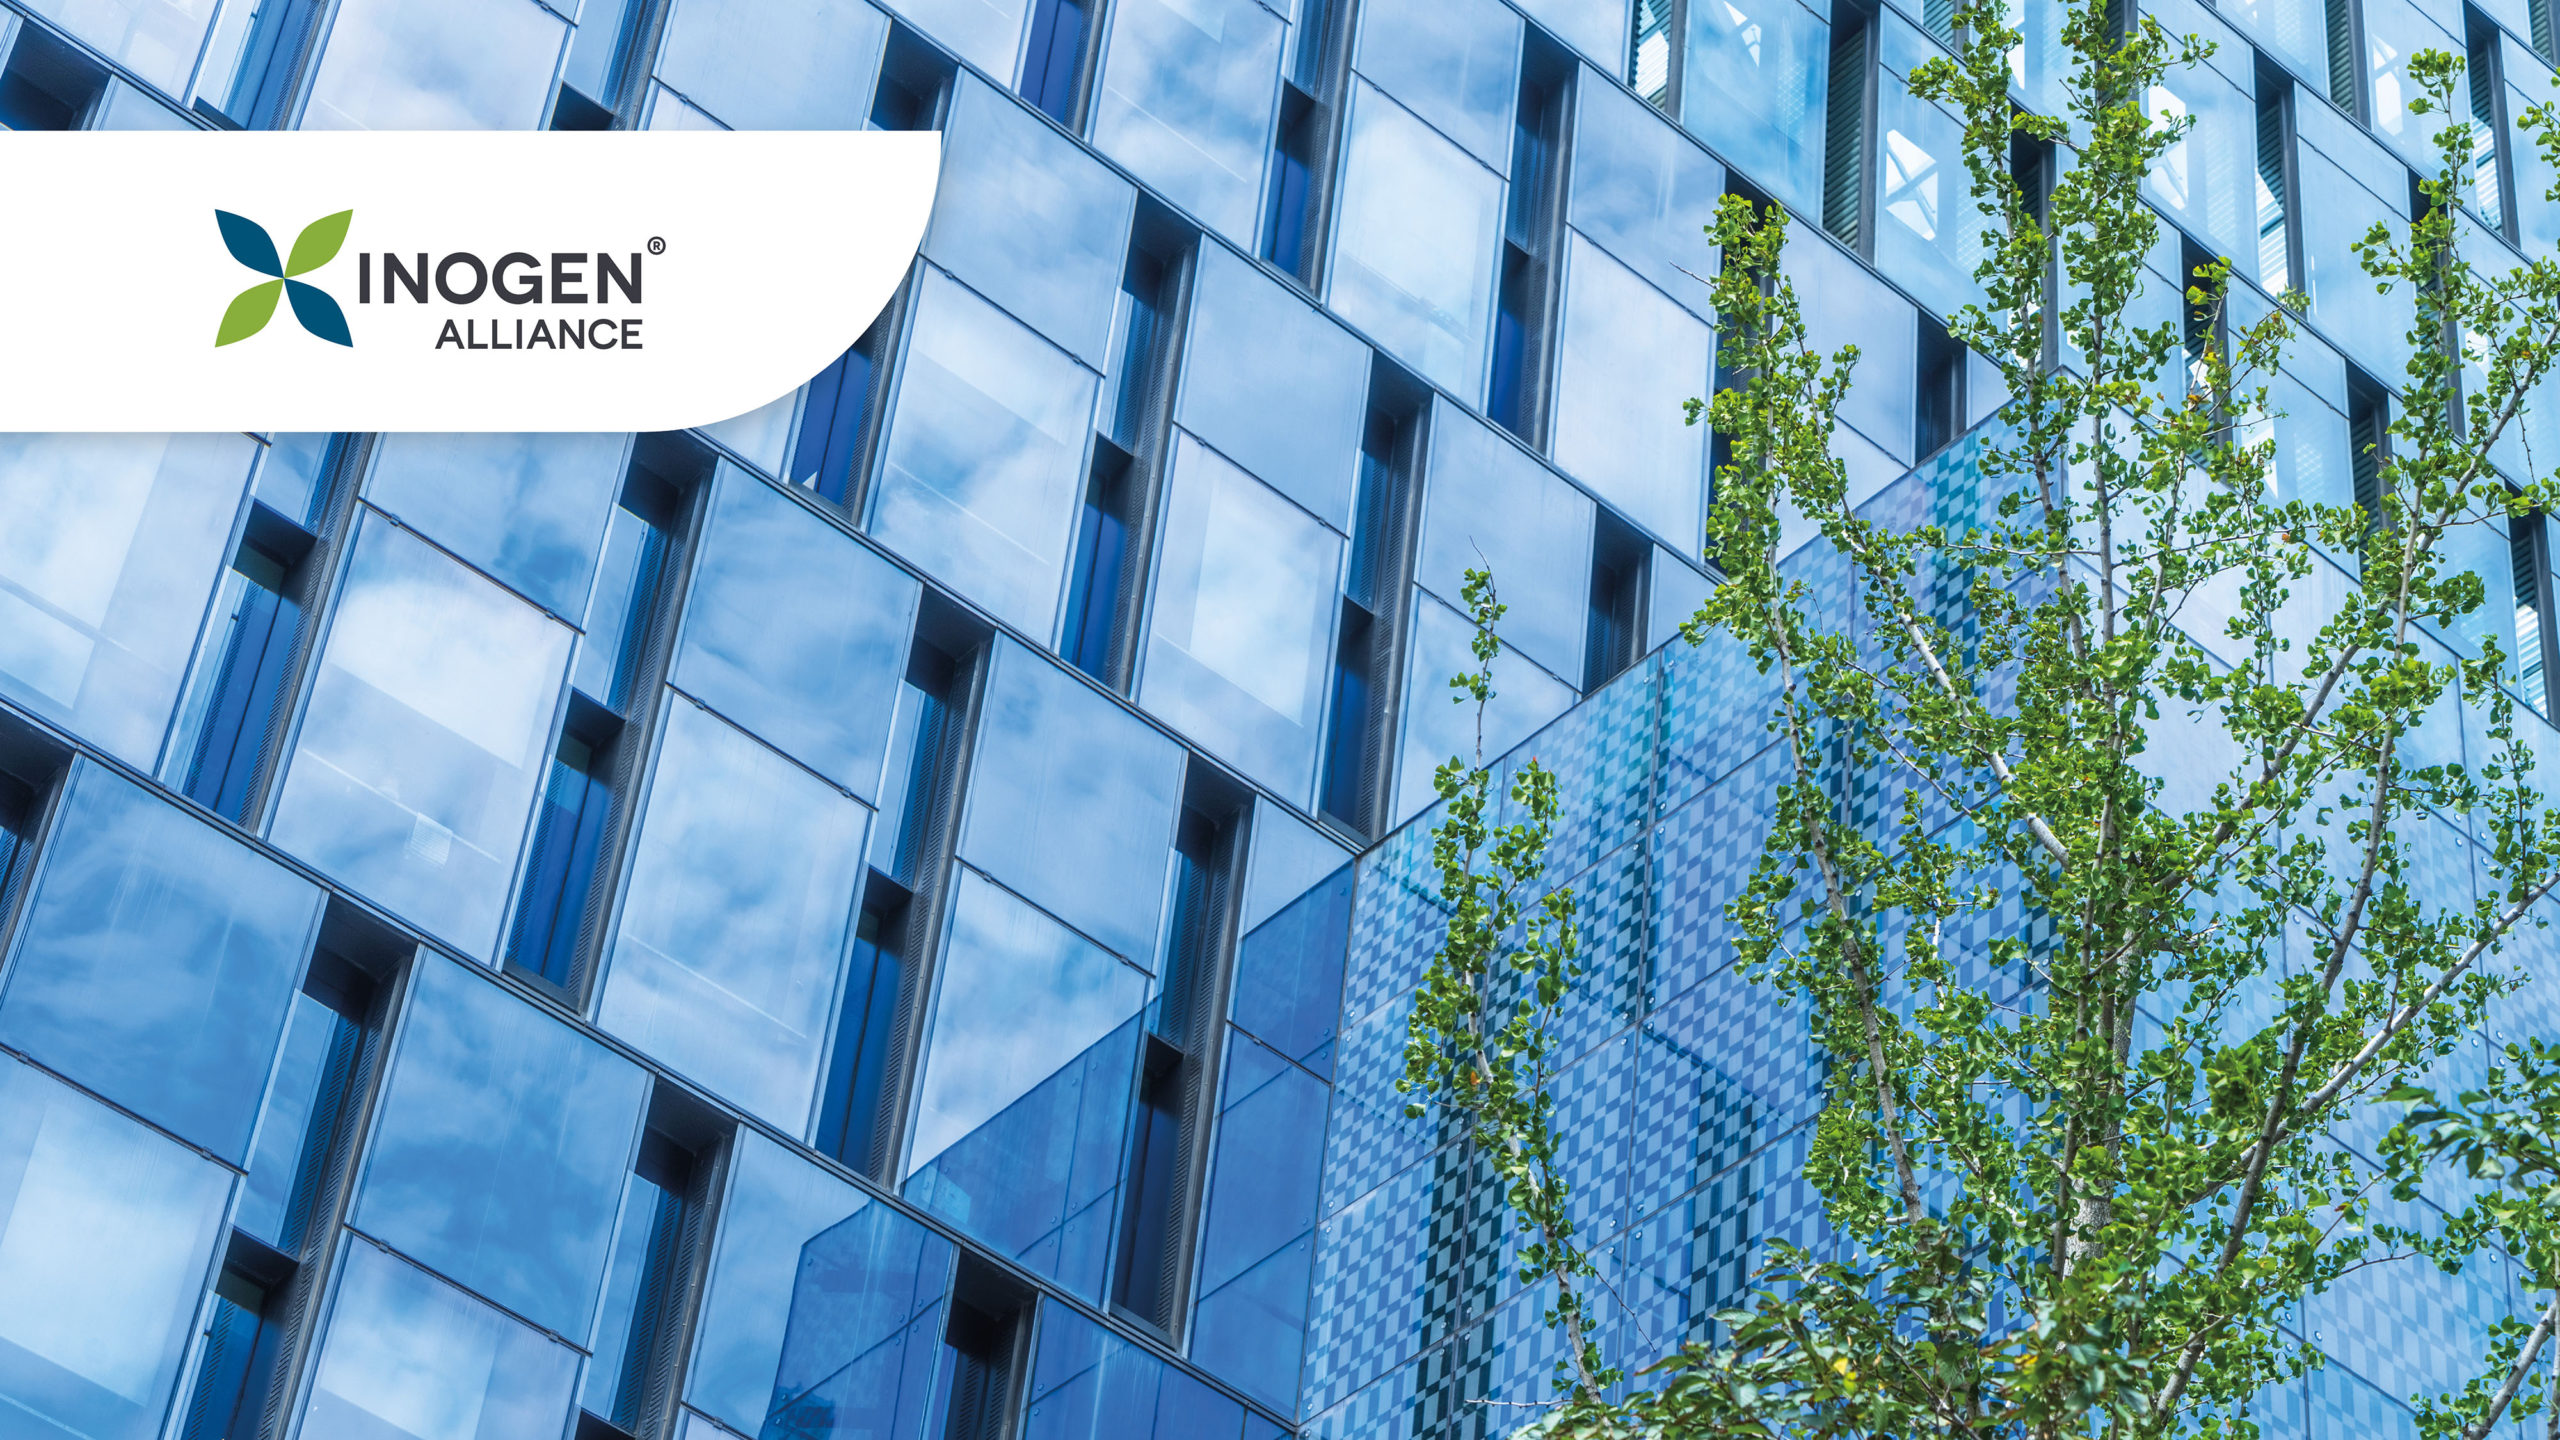 Inogen Alliance – Global Thinking. Local Delivery.